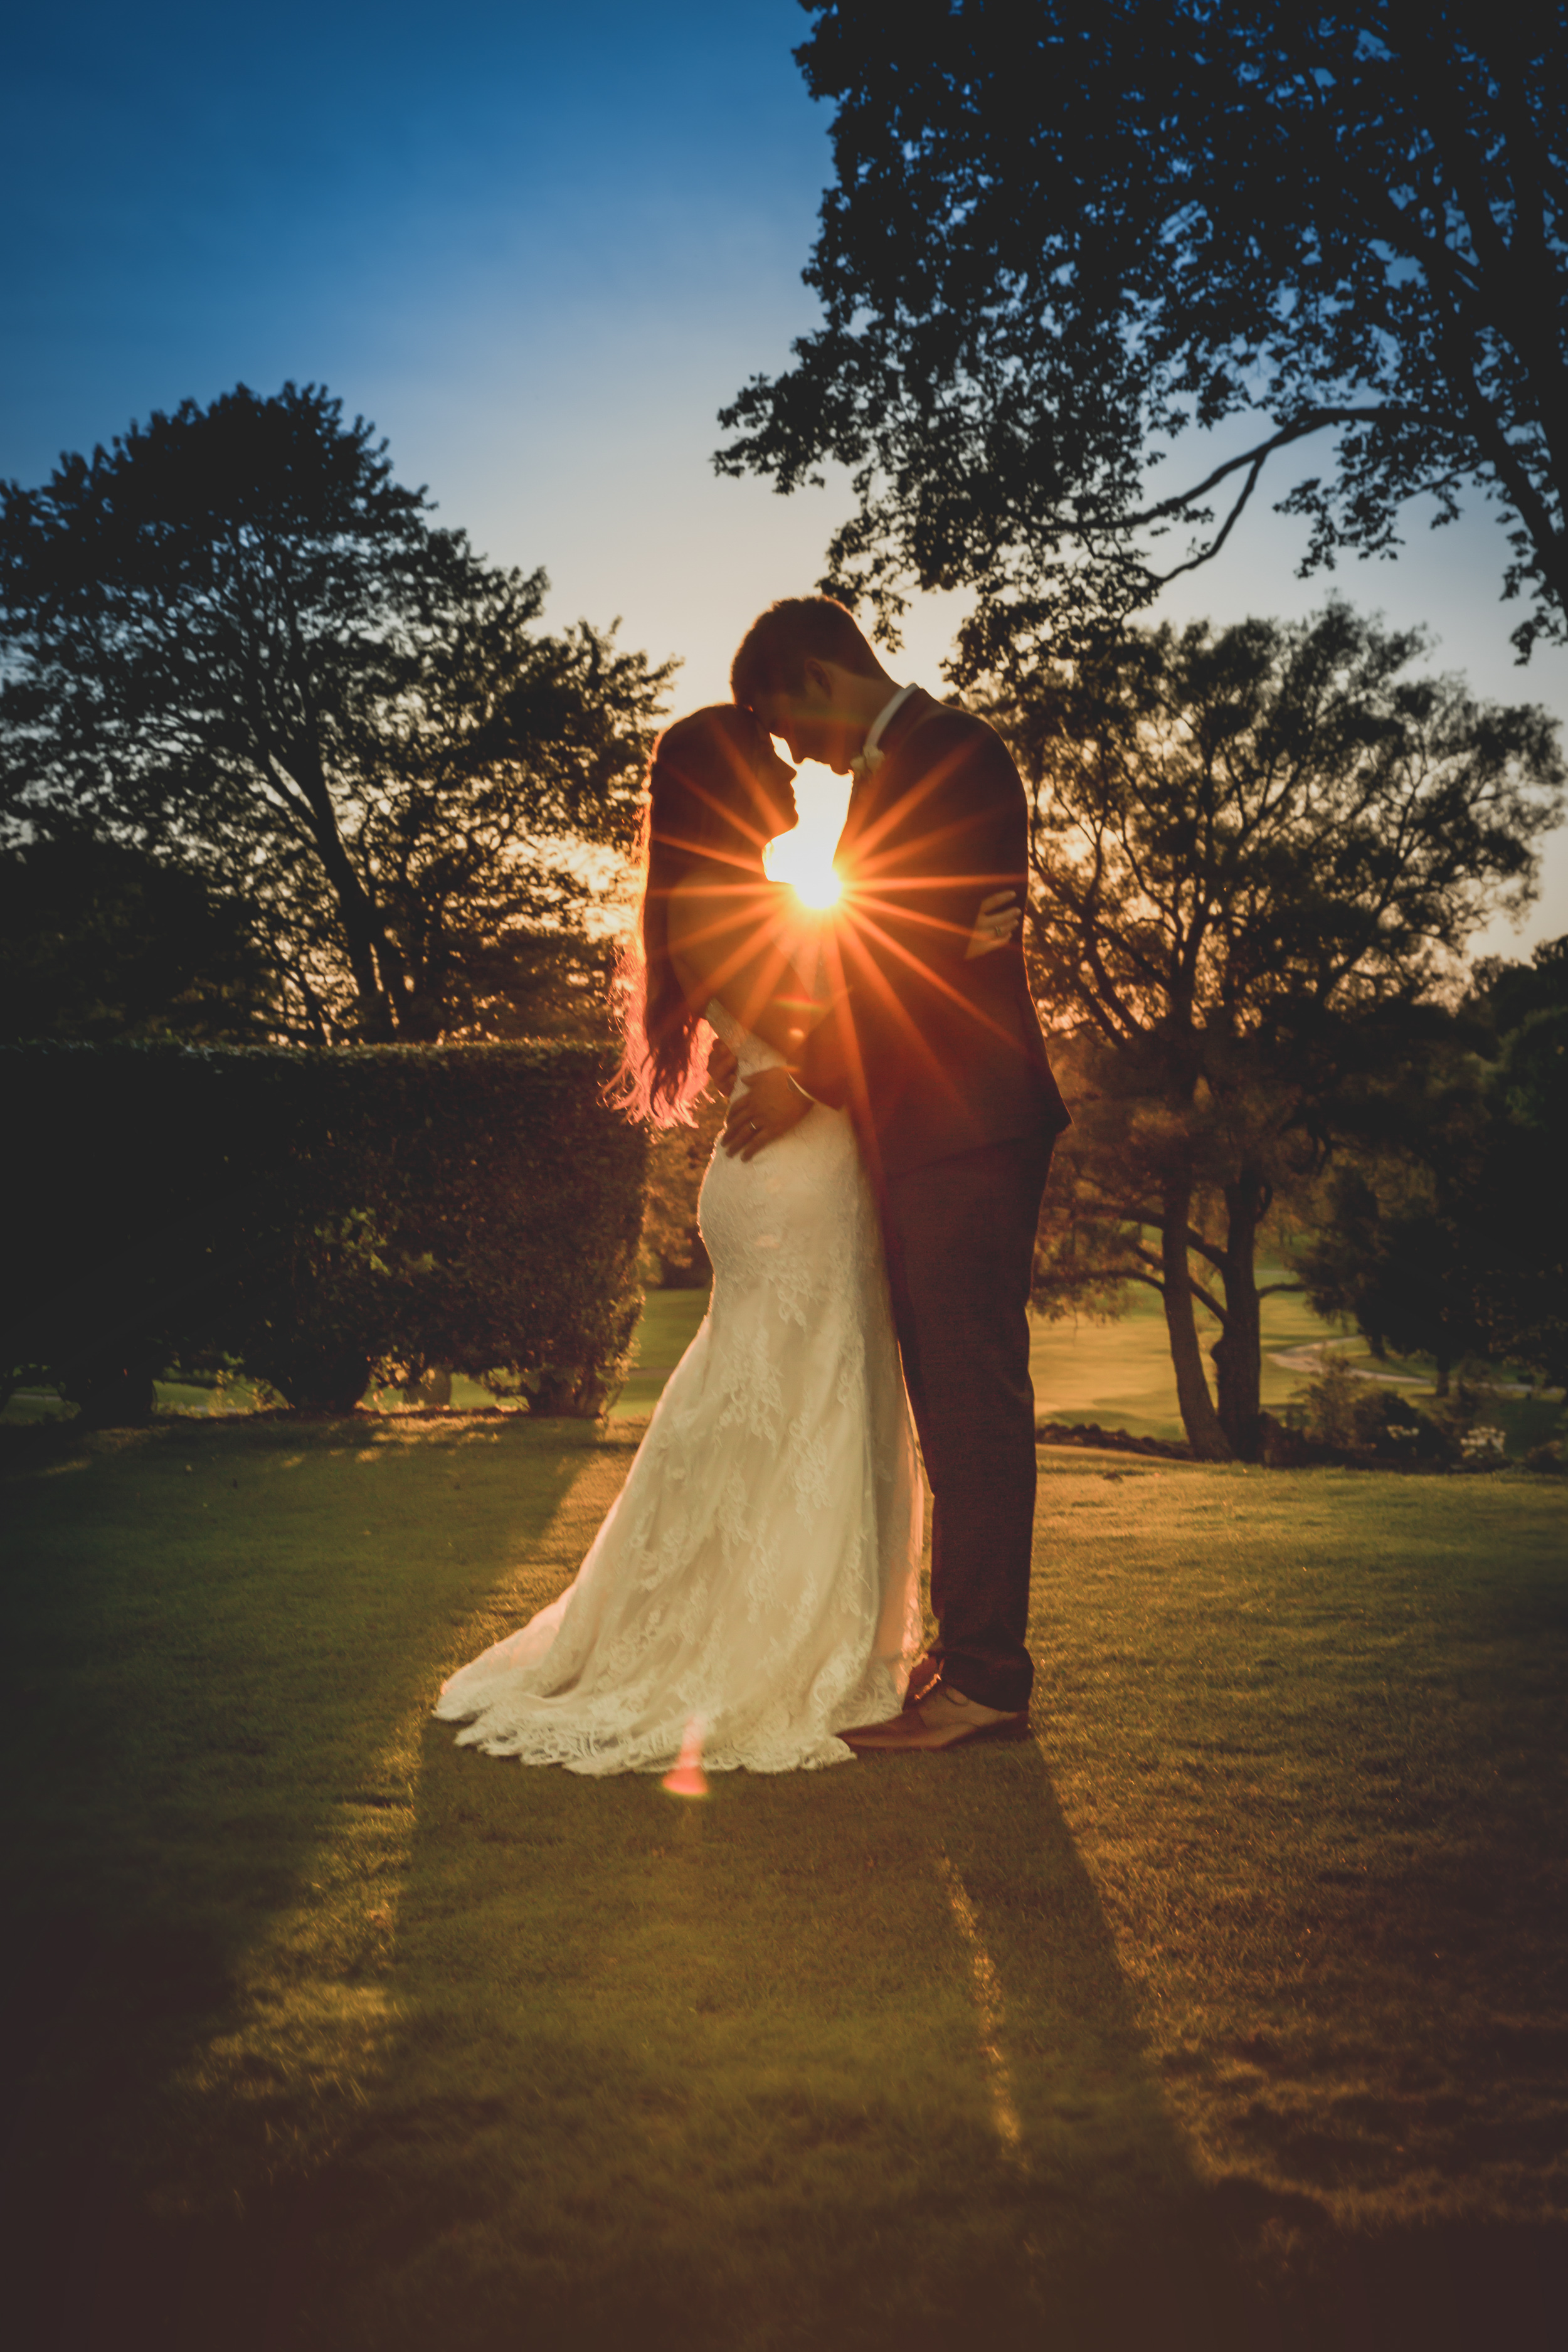 That light! When Golden Hour meets Happily Ever After!